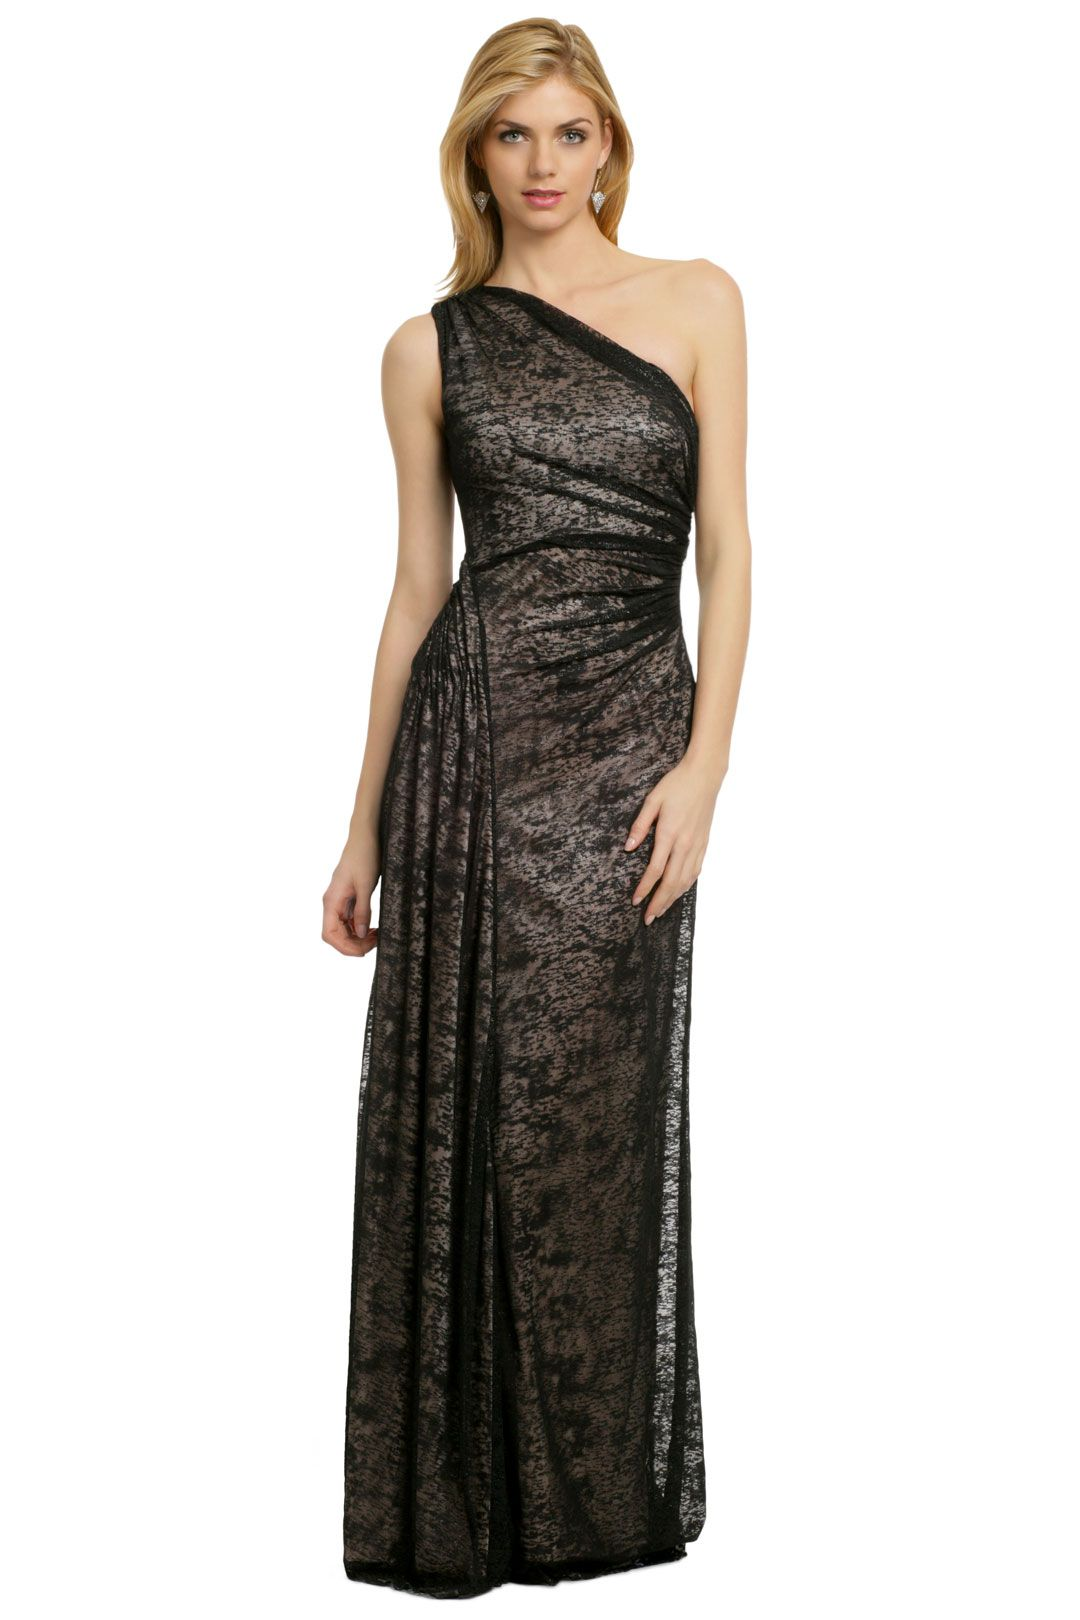 Night in Barcelona Gown | Gowns, David meister and Clothes